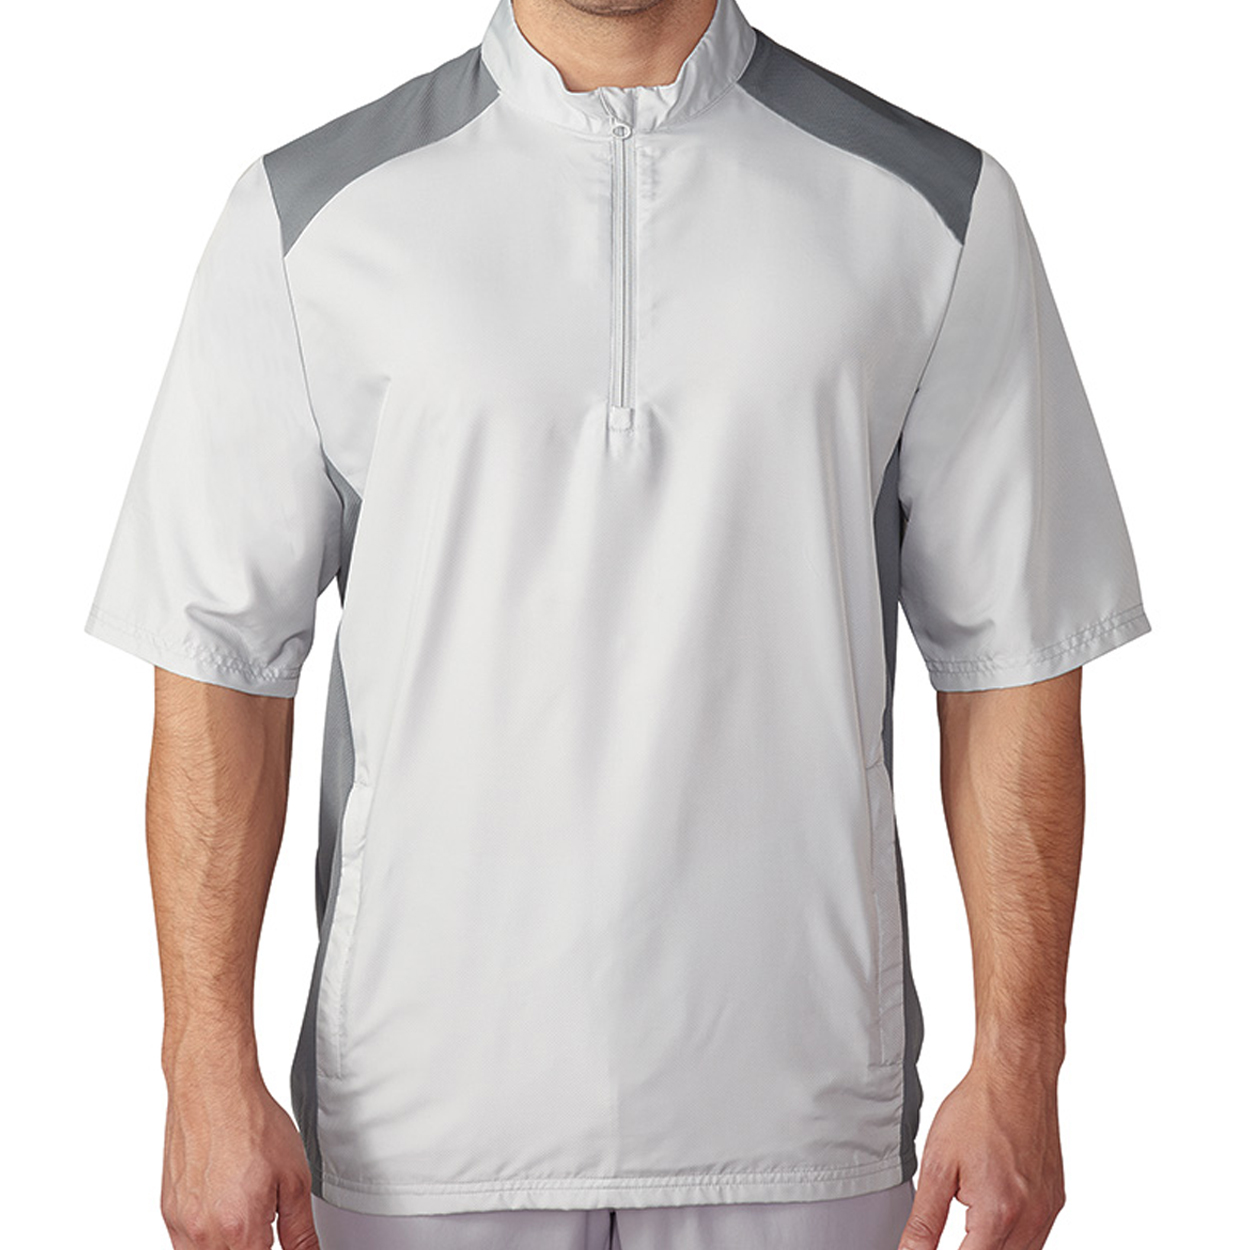 Adidas Golf Men's Club Short-Sleeve Windshirt